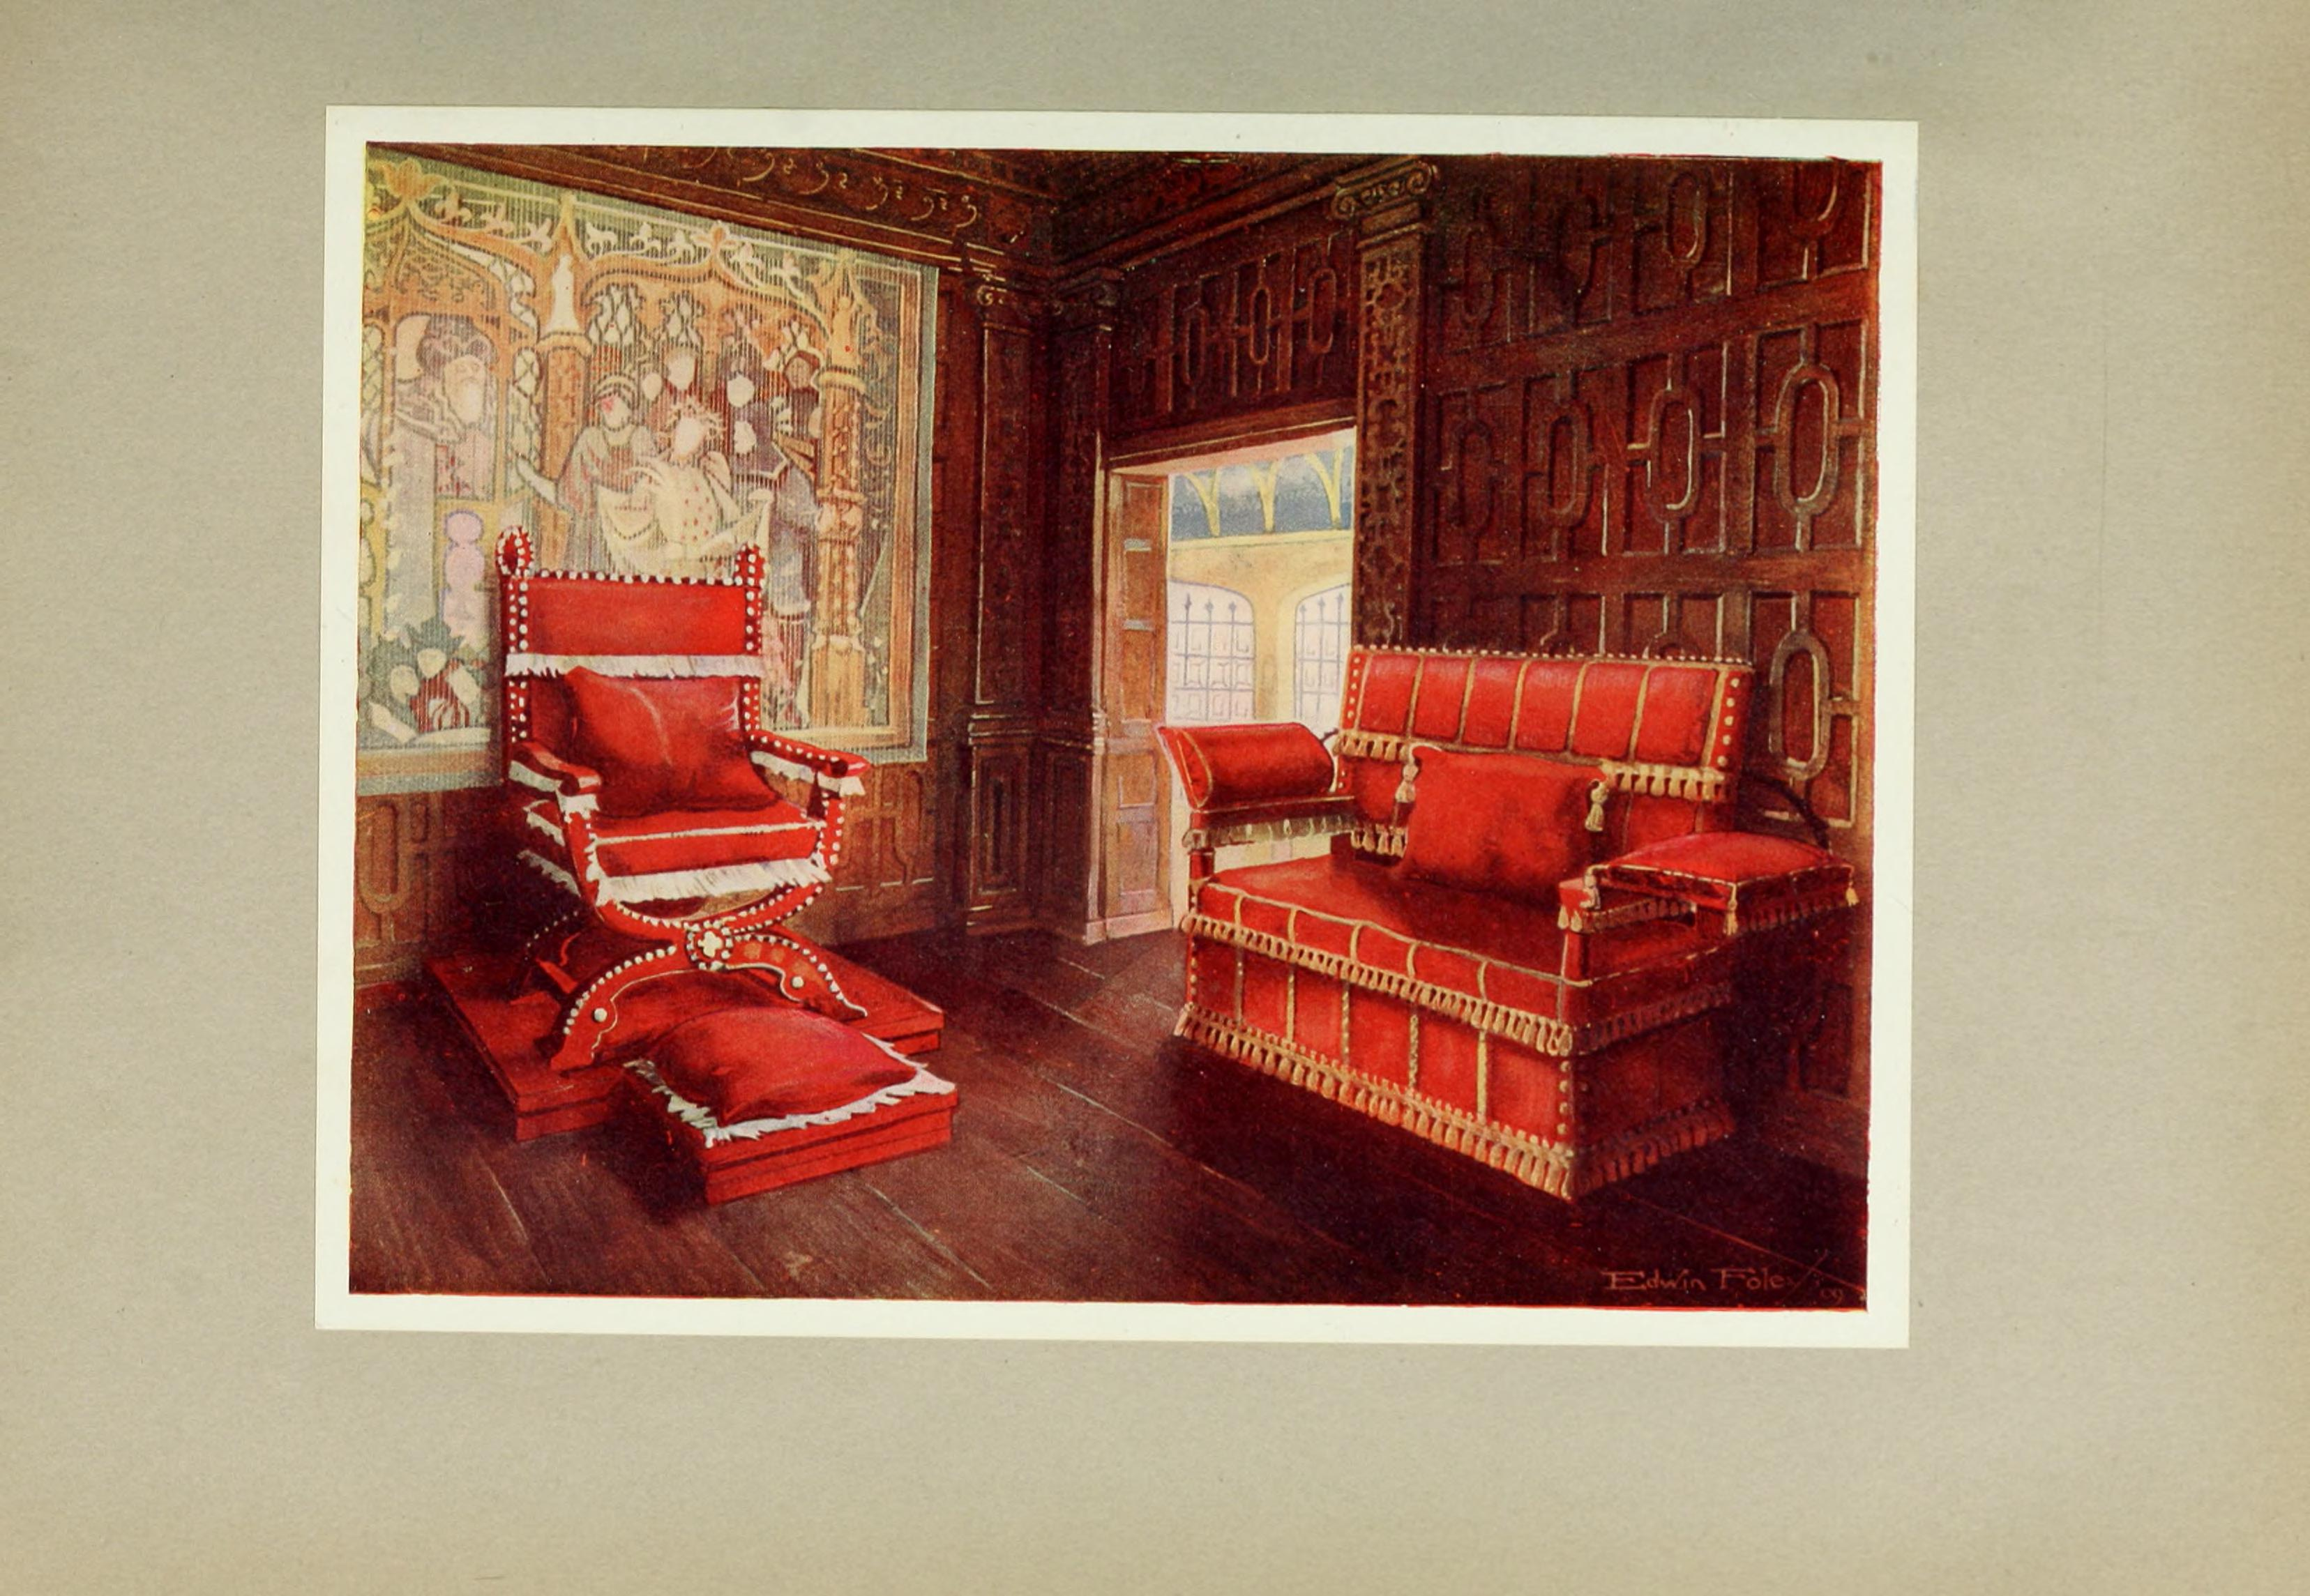 File:The book of decorative furniture, its form, colour and